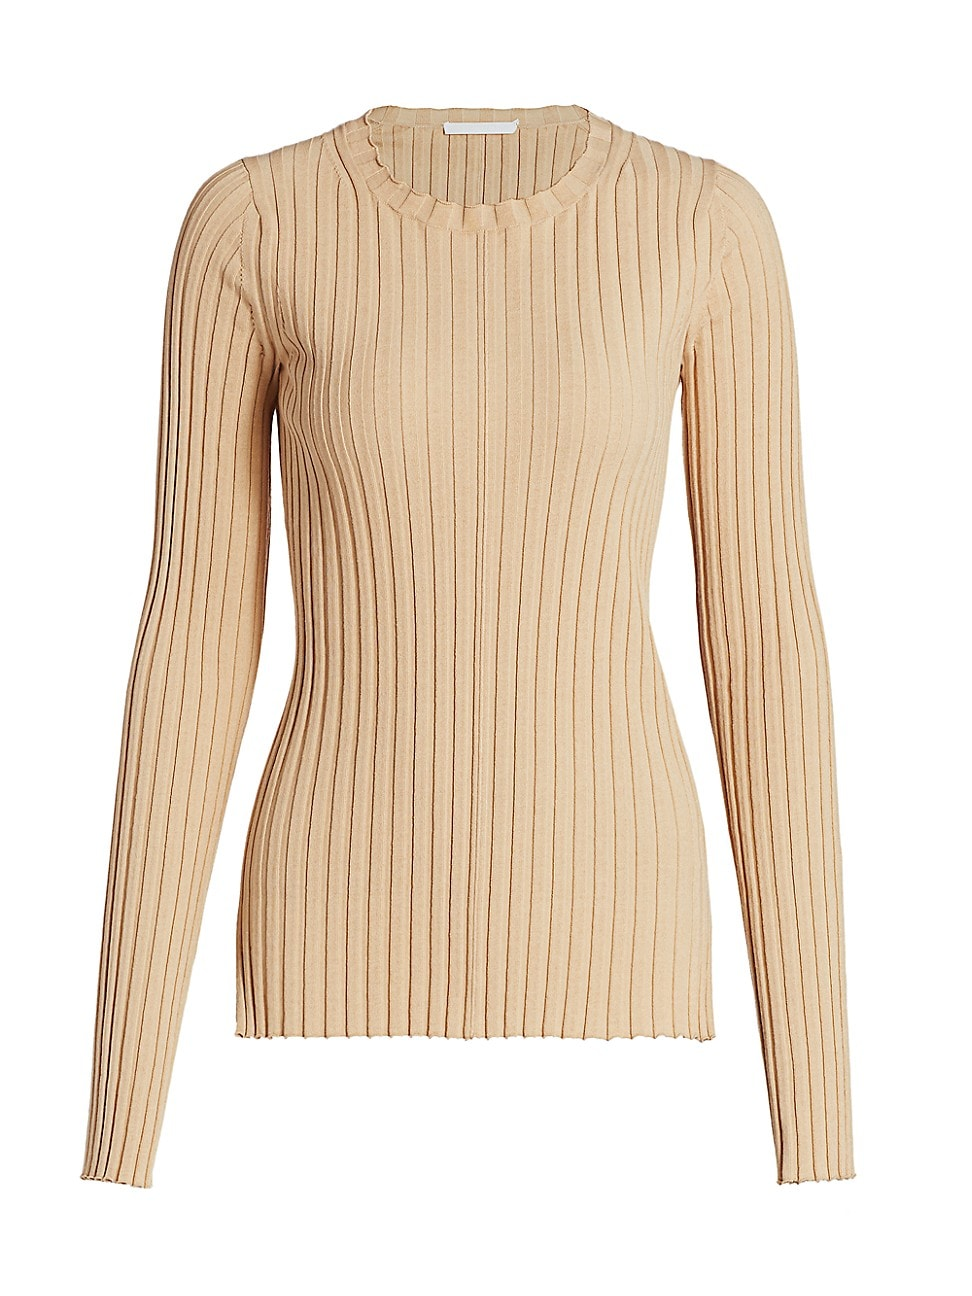 HELMUT LANG WOMEN'S RIBBED CREWNECK SWEATER